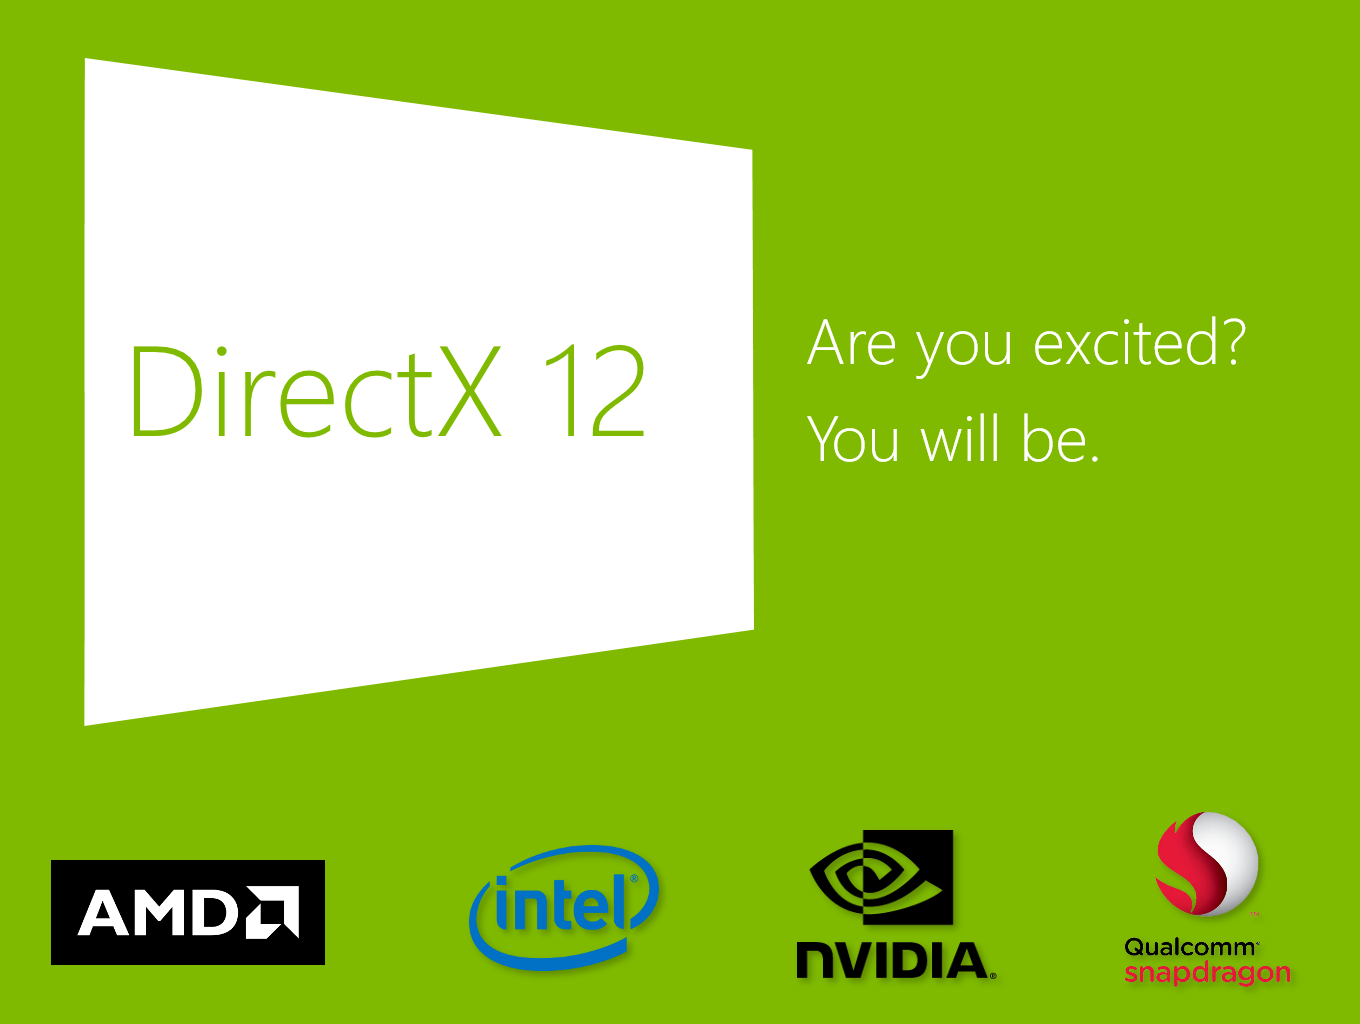 directx12 add-ons